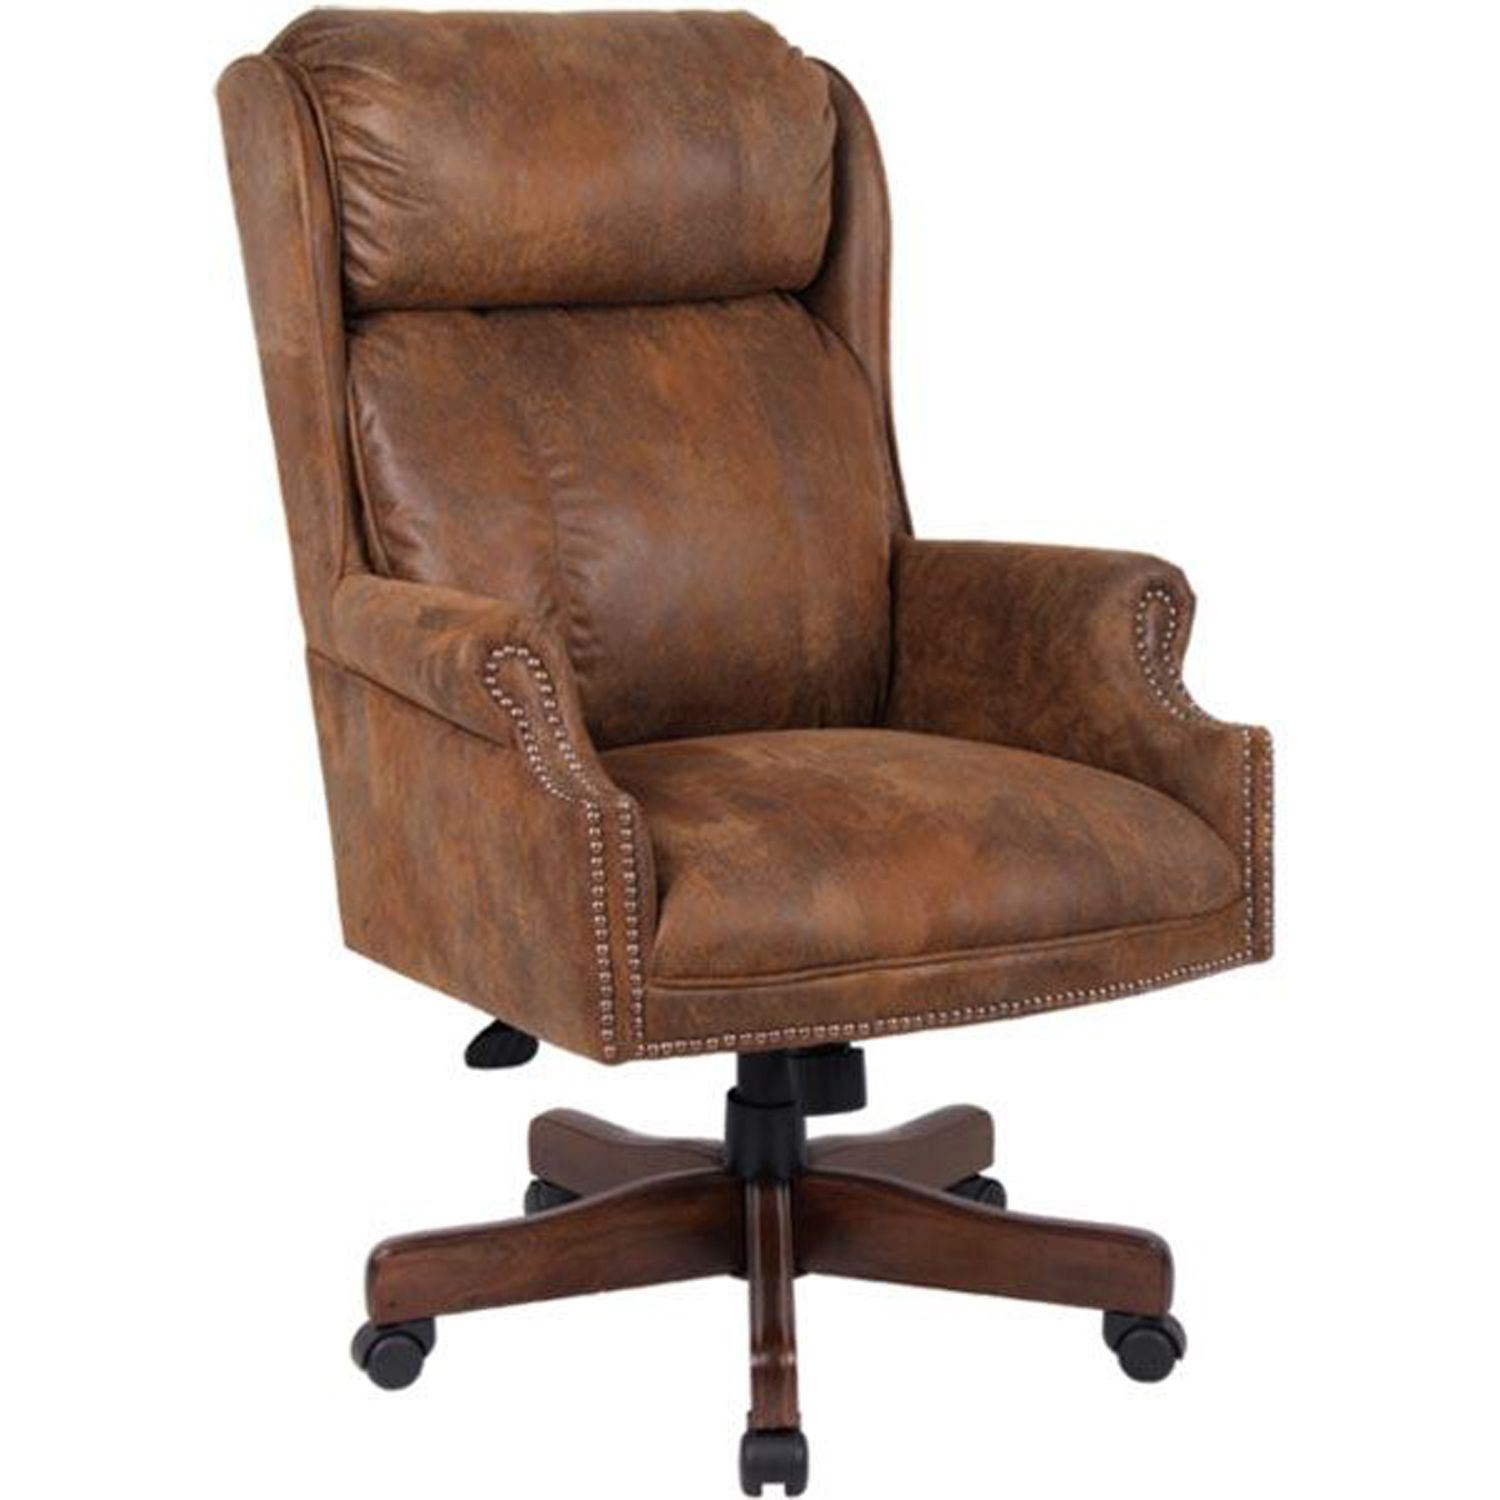 Centennial oak executive chair tobacco microfiber